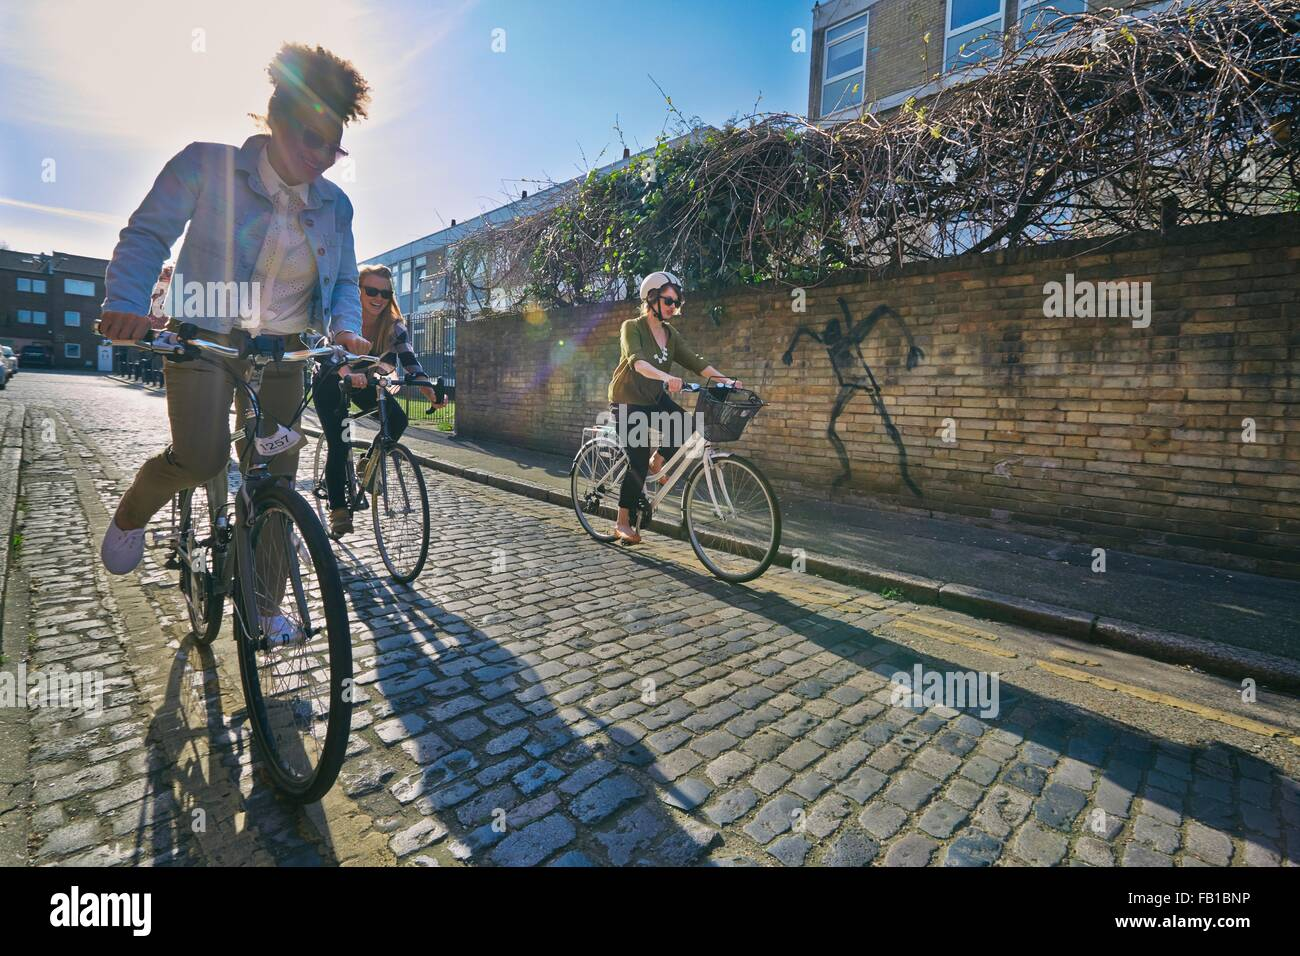 Angled view of women cycling on bicycles on cobblestone road - Stock Image